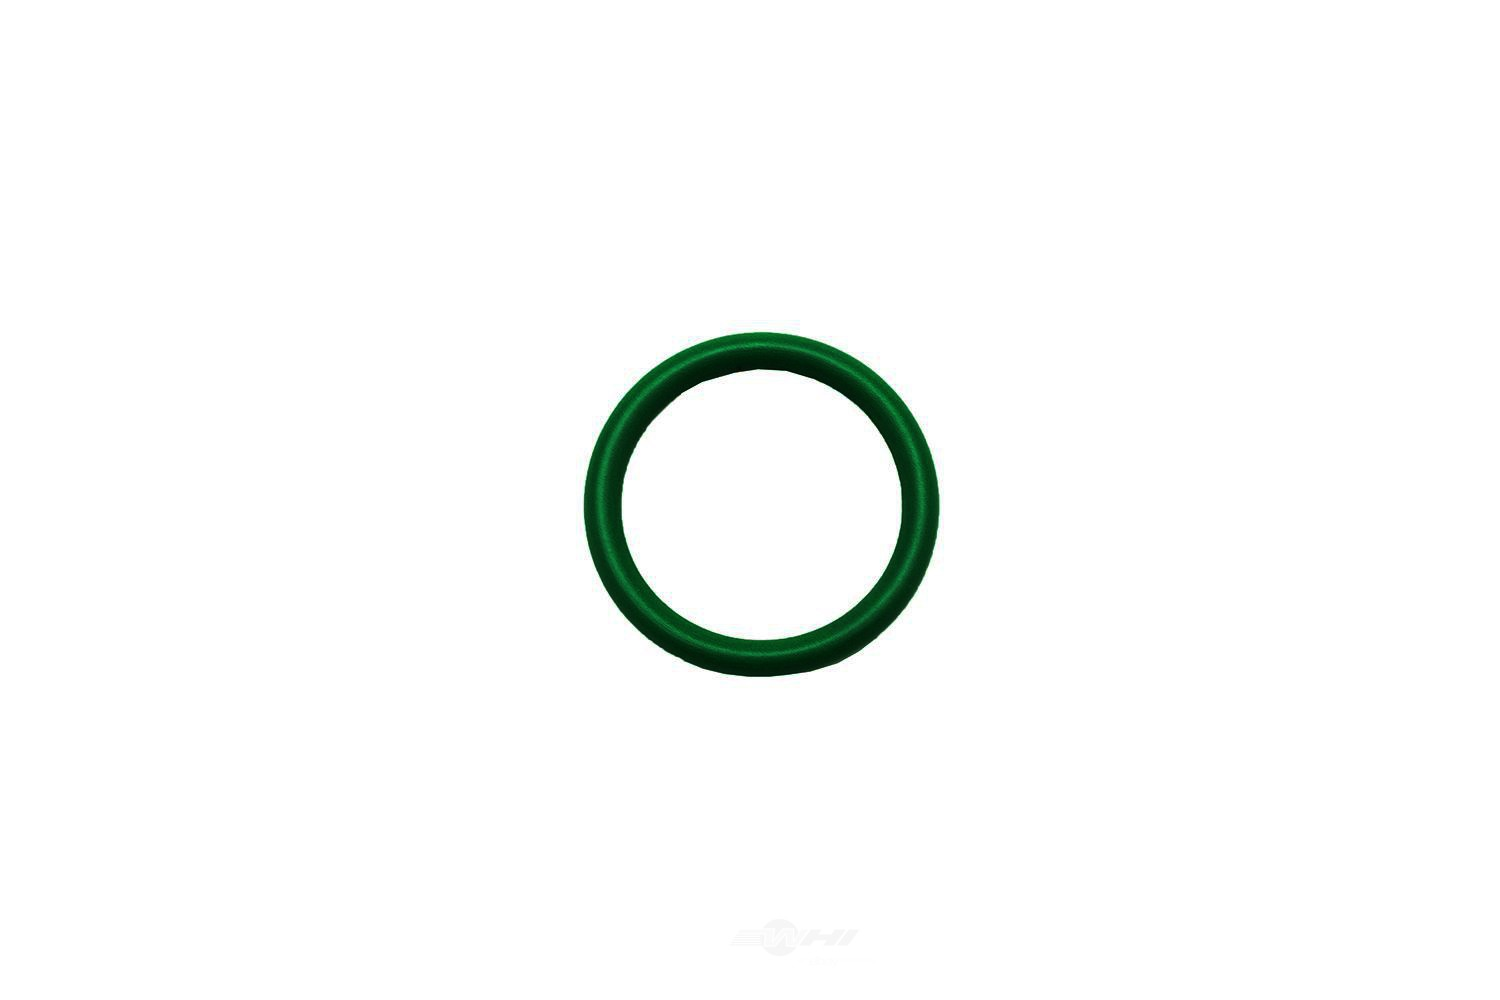 ACDELCO GM ORIGINAL EQUIPMENT - Engine Oil Level Sensor Seal - DCB 12638820